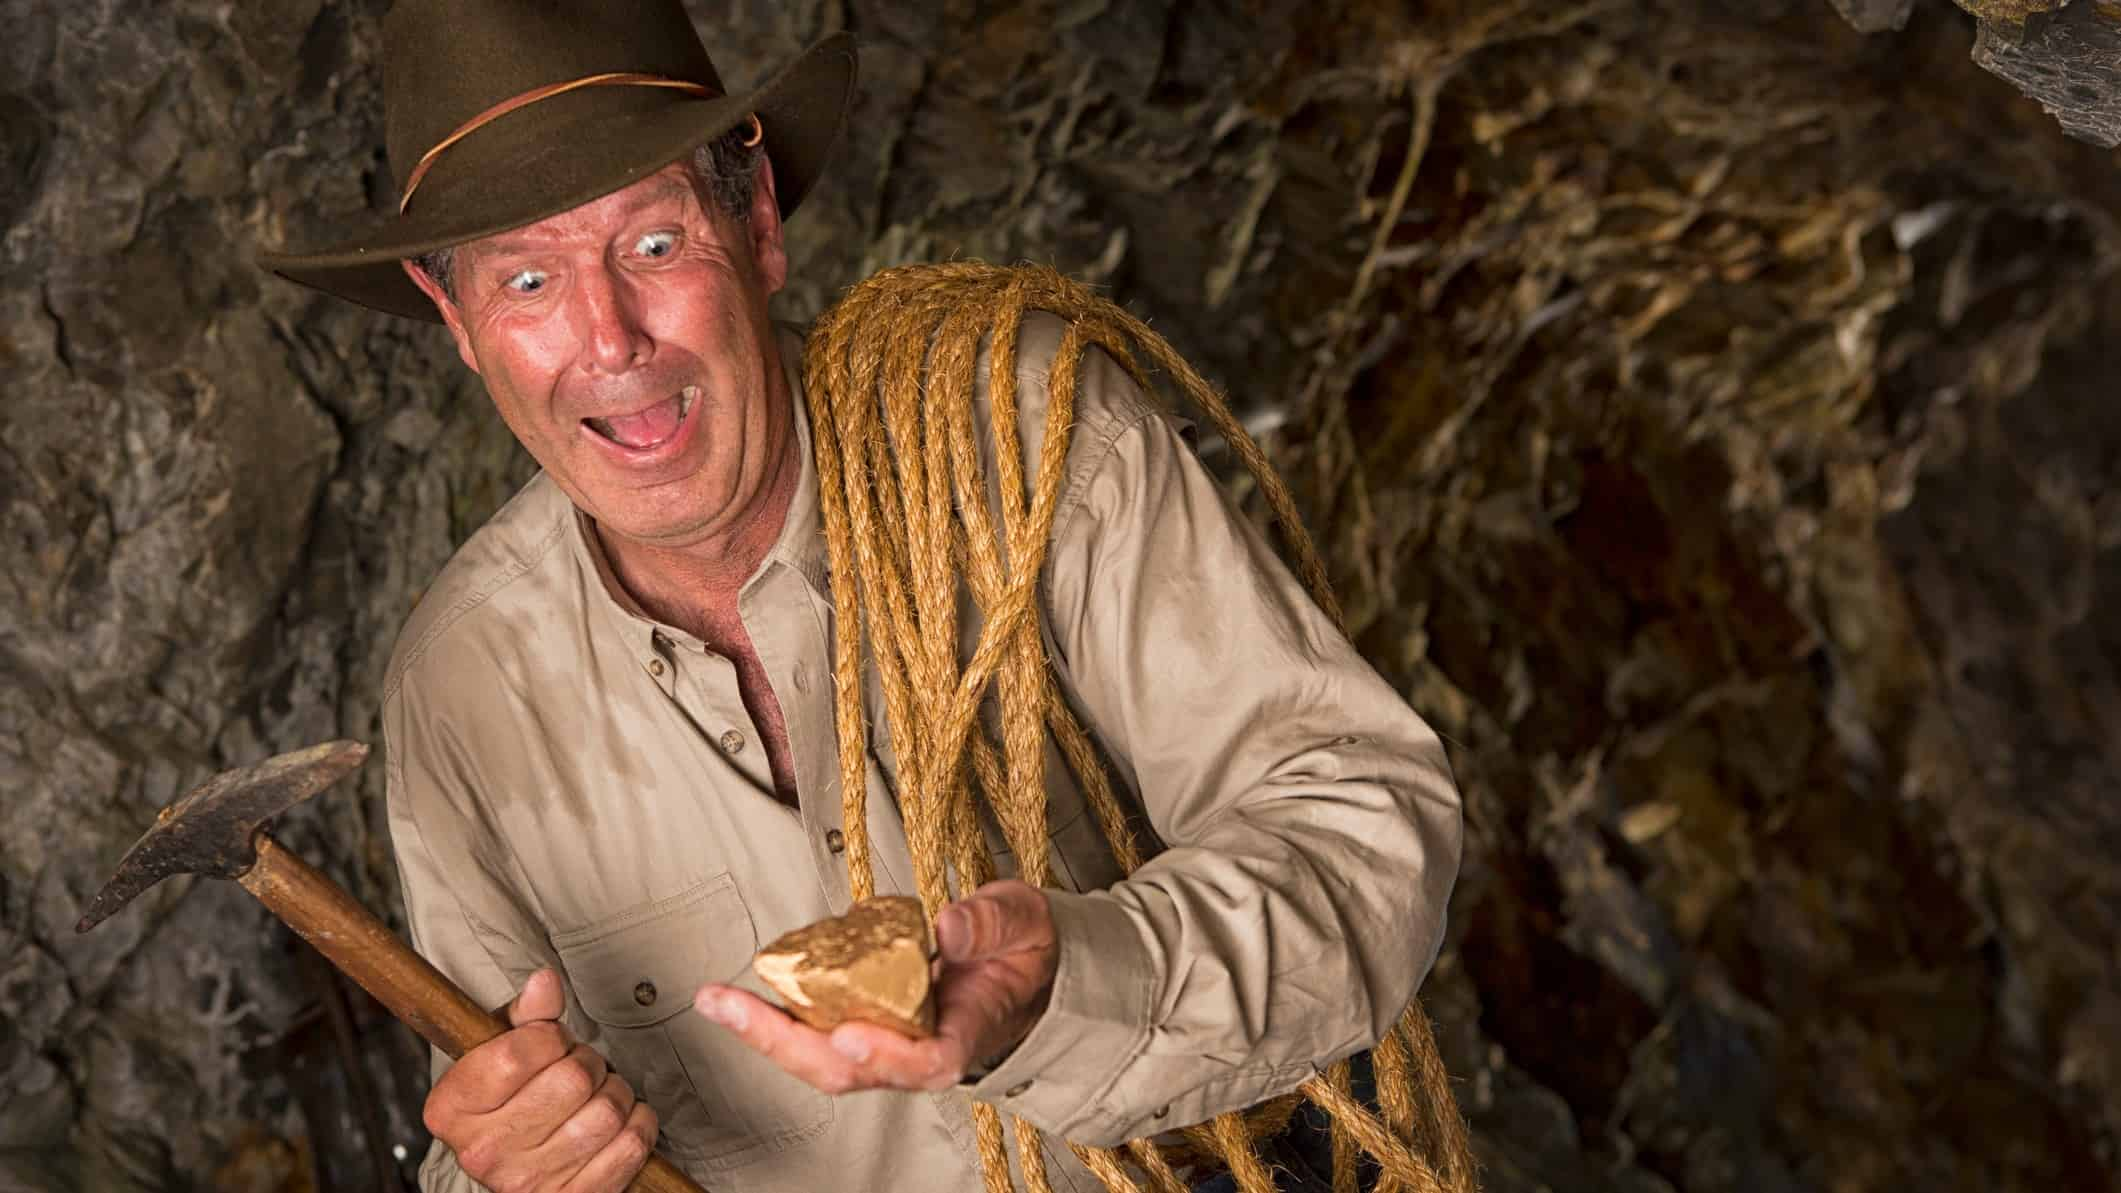 St Barbara share price Minder underground looks excited a he holds a nugget of gold he has discovered.